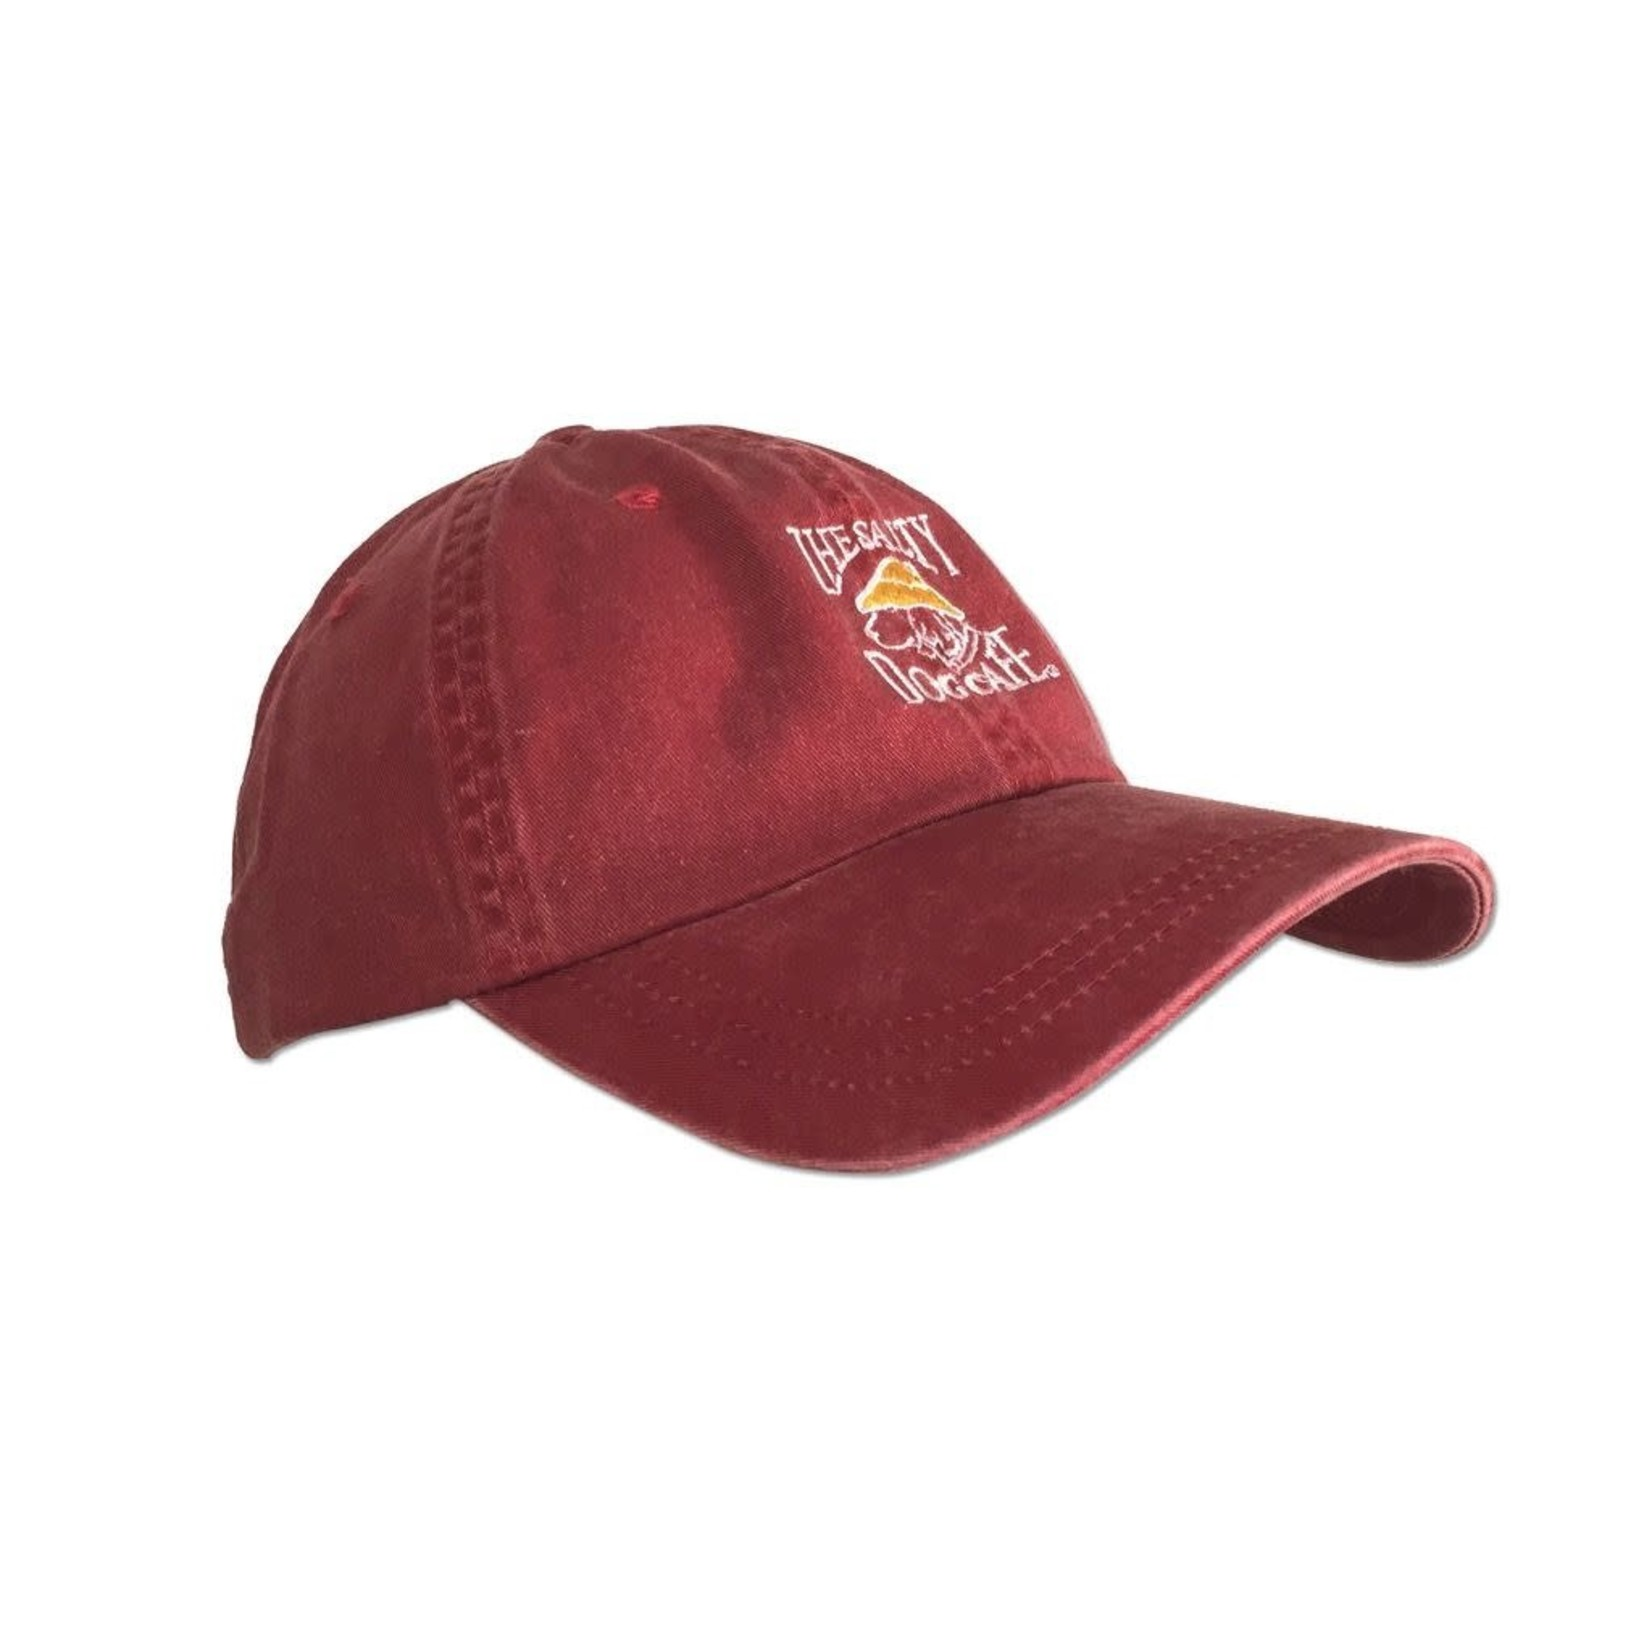 Hat - Pigment Dyed, Red Rock, Adult